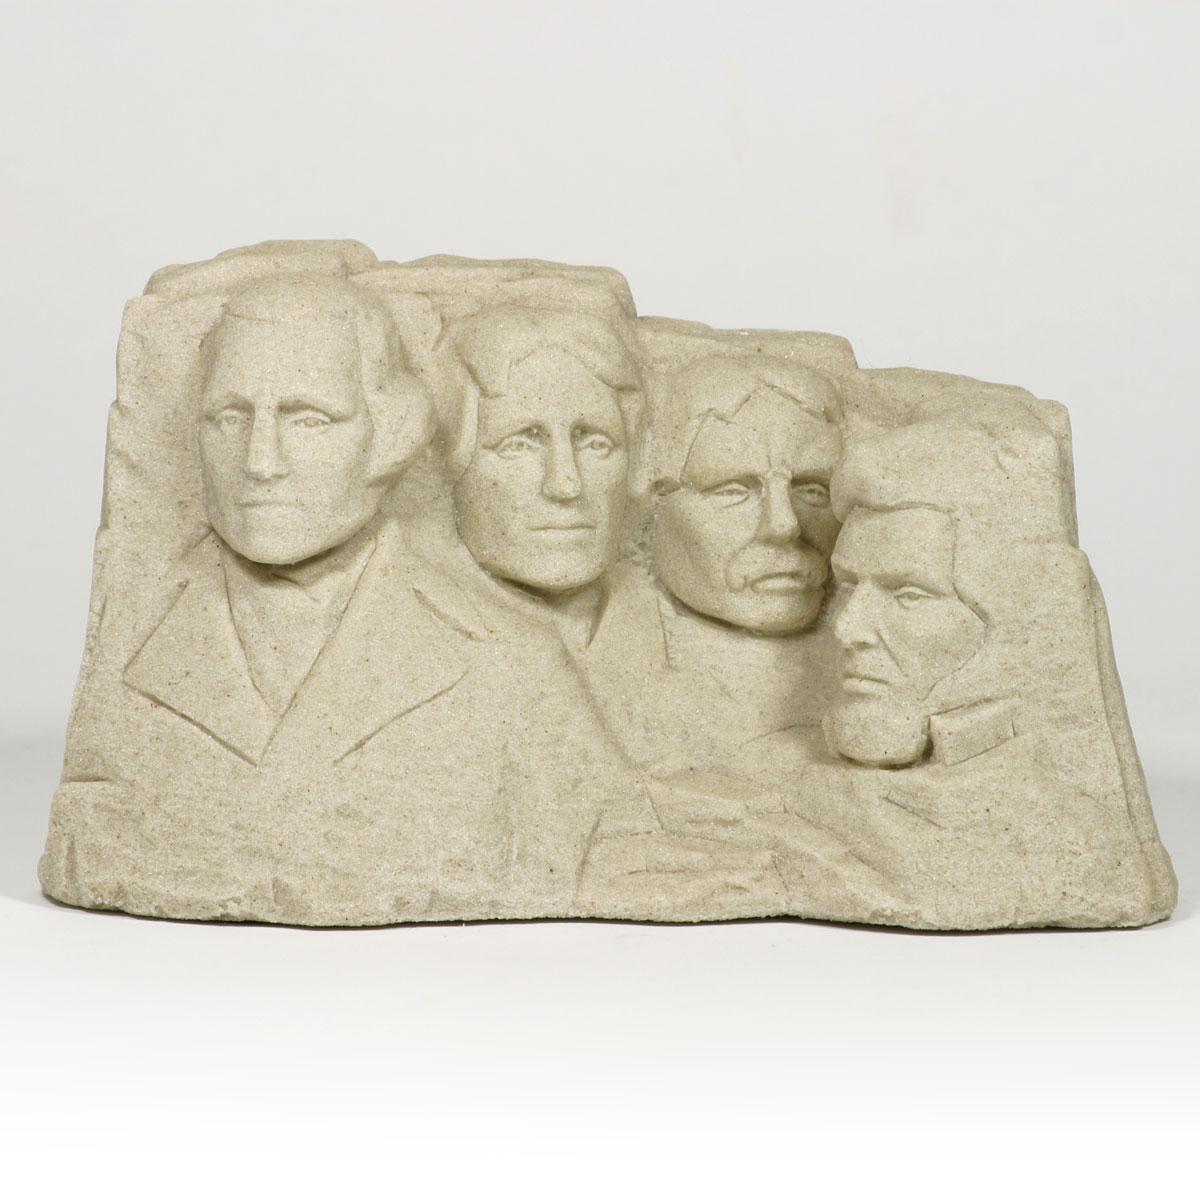 MOUNT RUSHMORE LARGE SOUTH DAKOTA MADE SAND CASTING